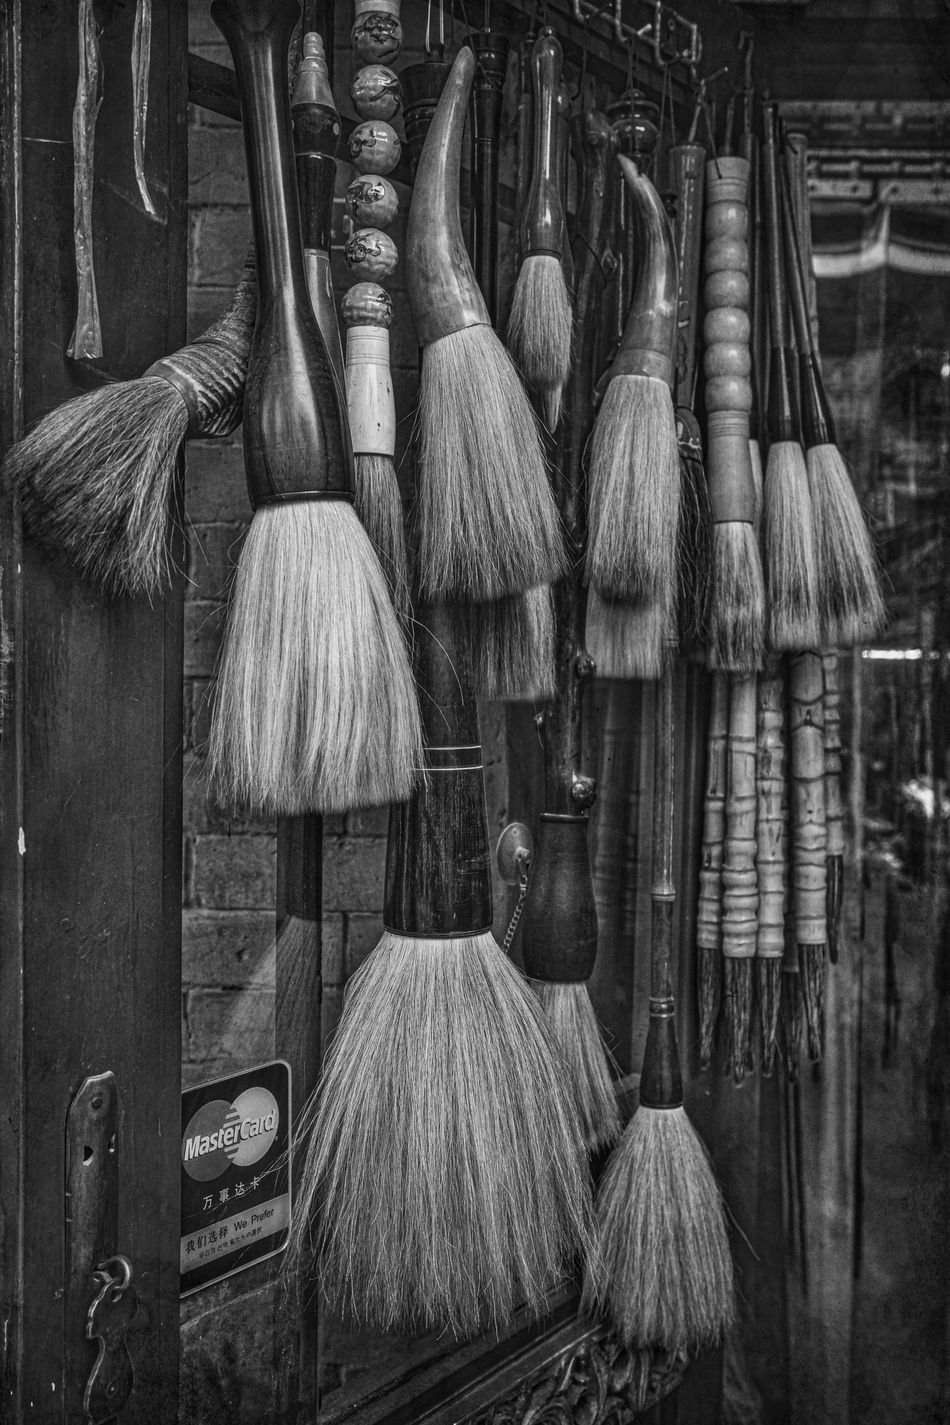 Art Arts Culture And Entertainment Beijing Black & White Brush Brushes Calligraphy Calligraphyart China China Beauty Chinese Art Chinese Culture Cleaning Equipment Close-up Equipment EyeEm Best Shots Eyeem In Beijing No People Painting Wood - Material